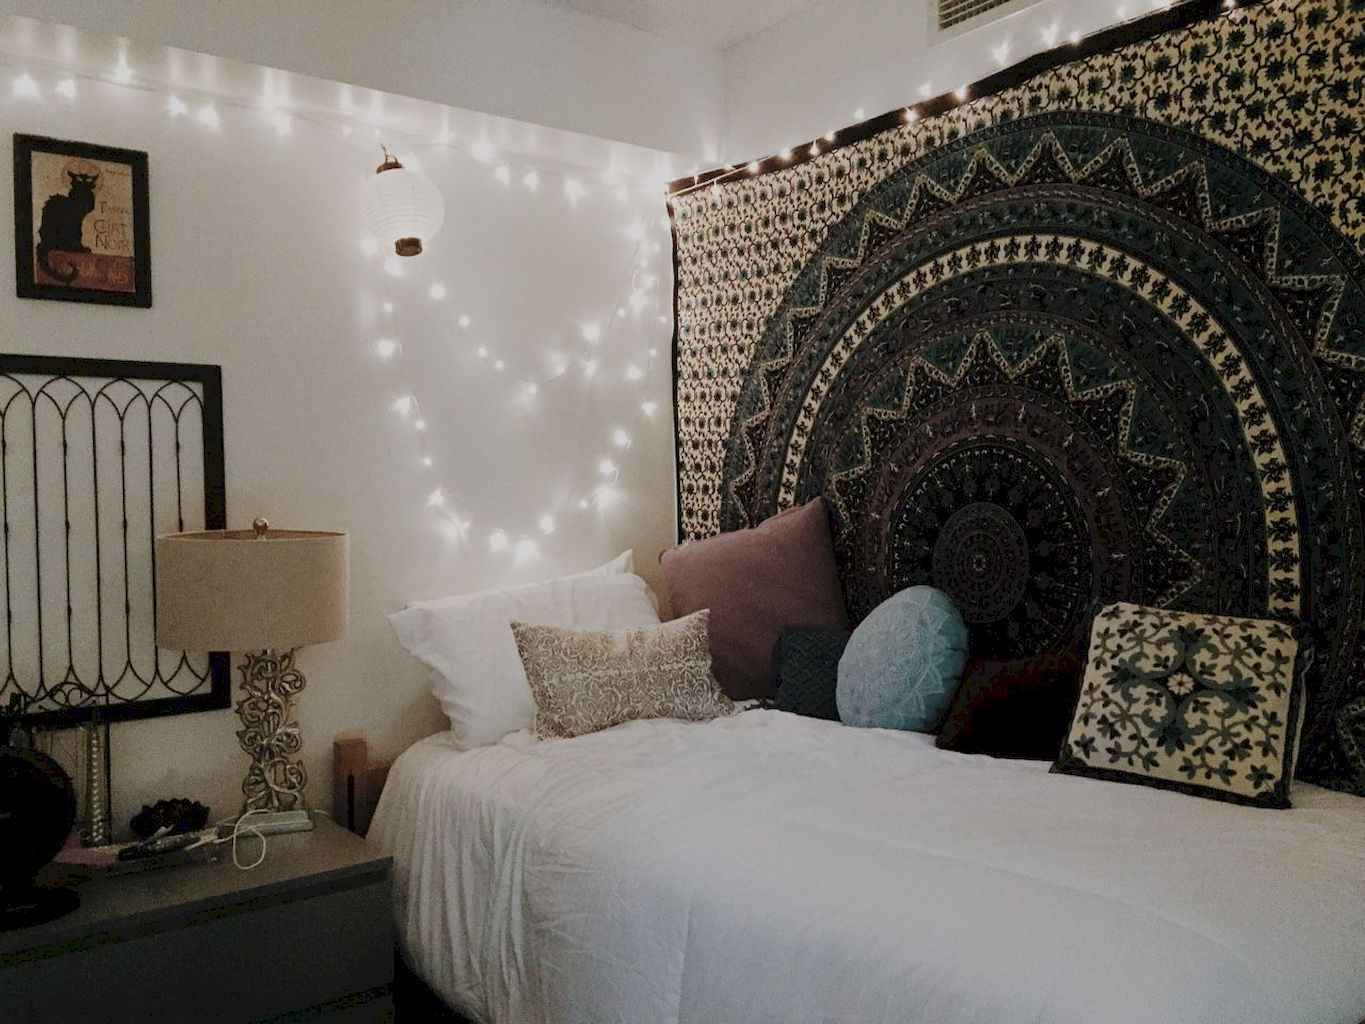 Clever college apartment decorating ideas on a budget (16)